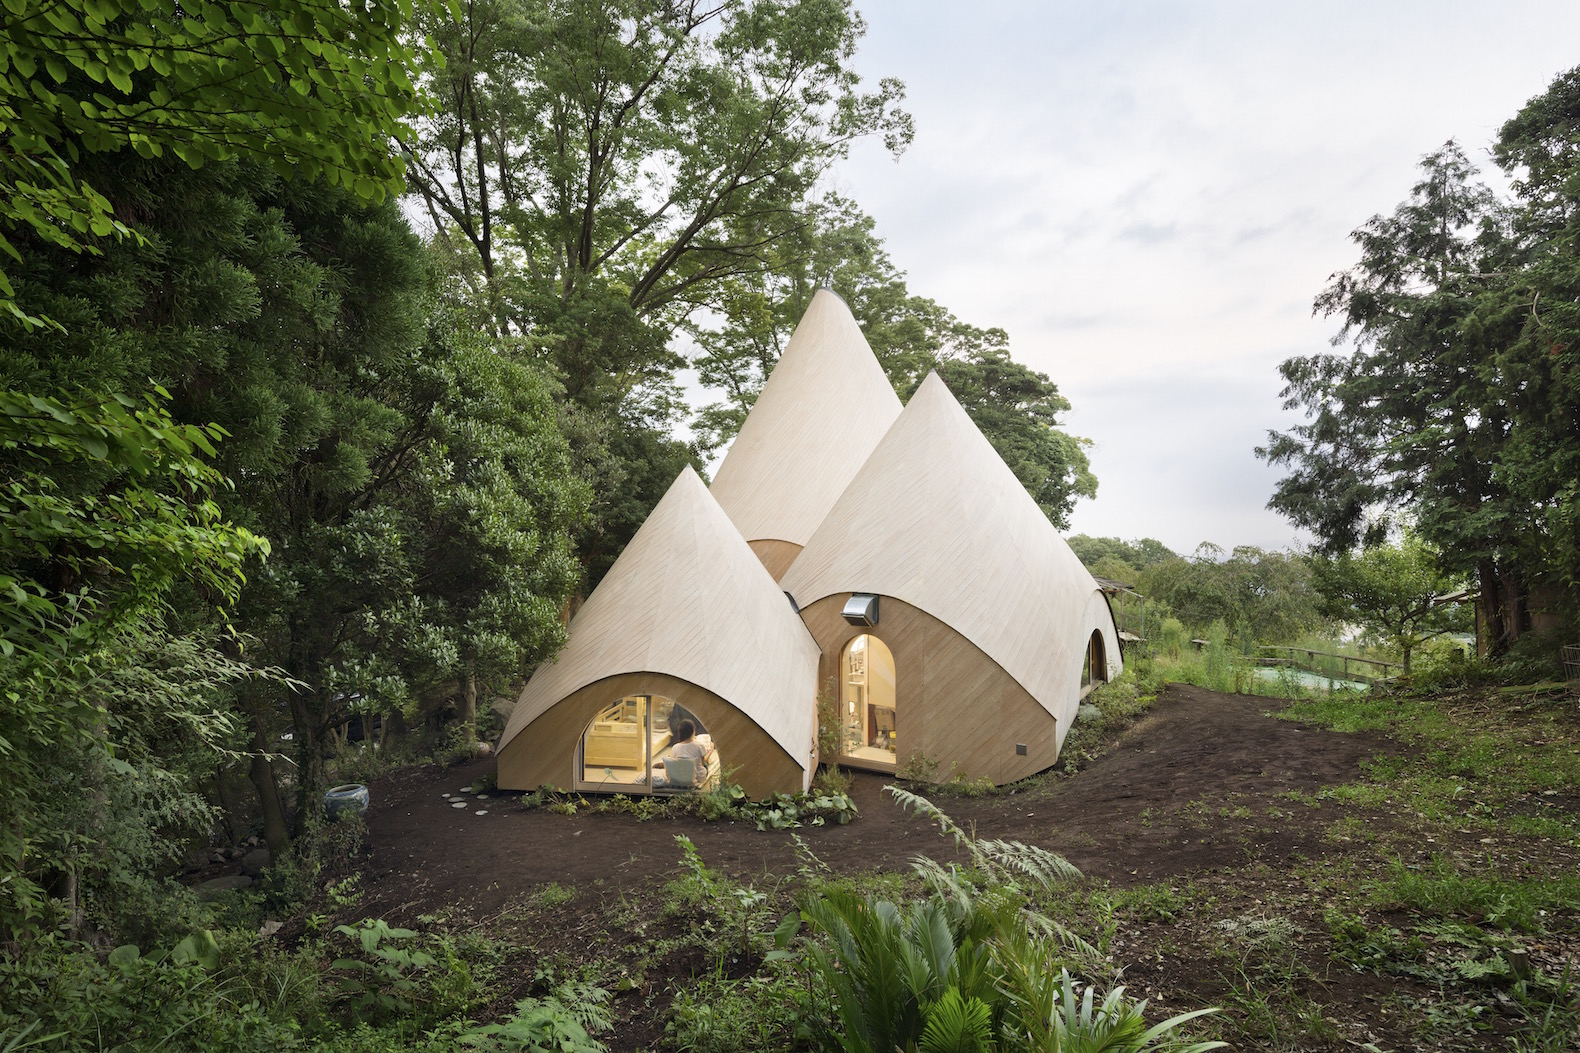 Dreamy teepee-shaped huts cater to the elderly in a Japanese forest